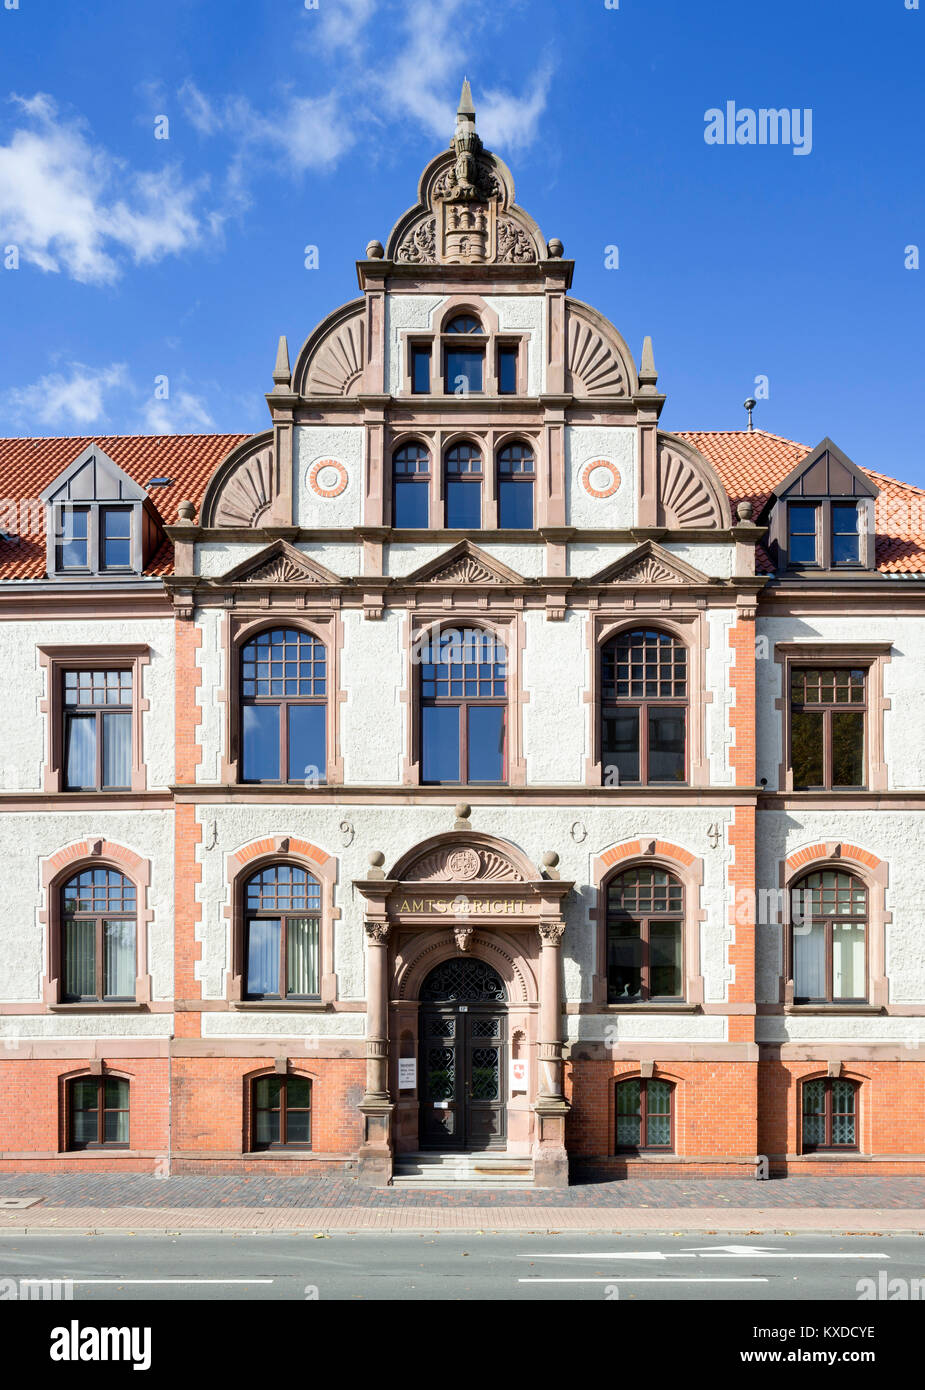 Local Court,Cuxhaven,Lower Saxony,Germany - Stock Image